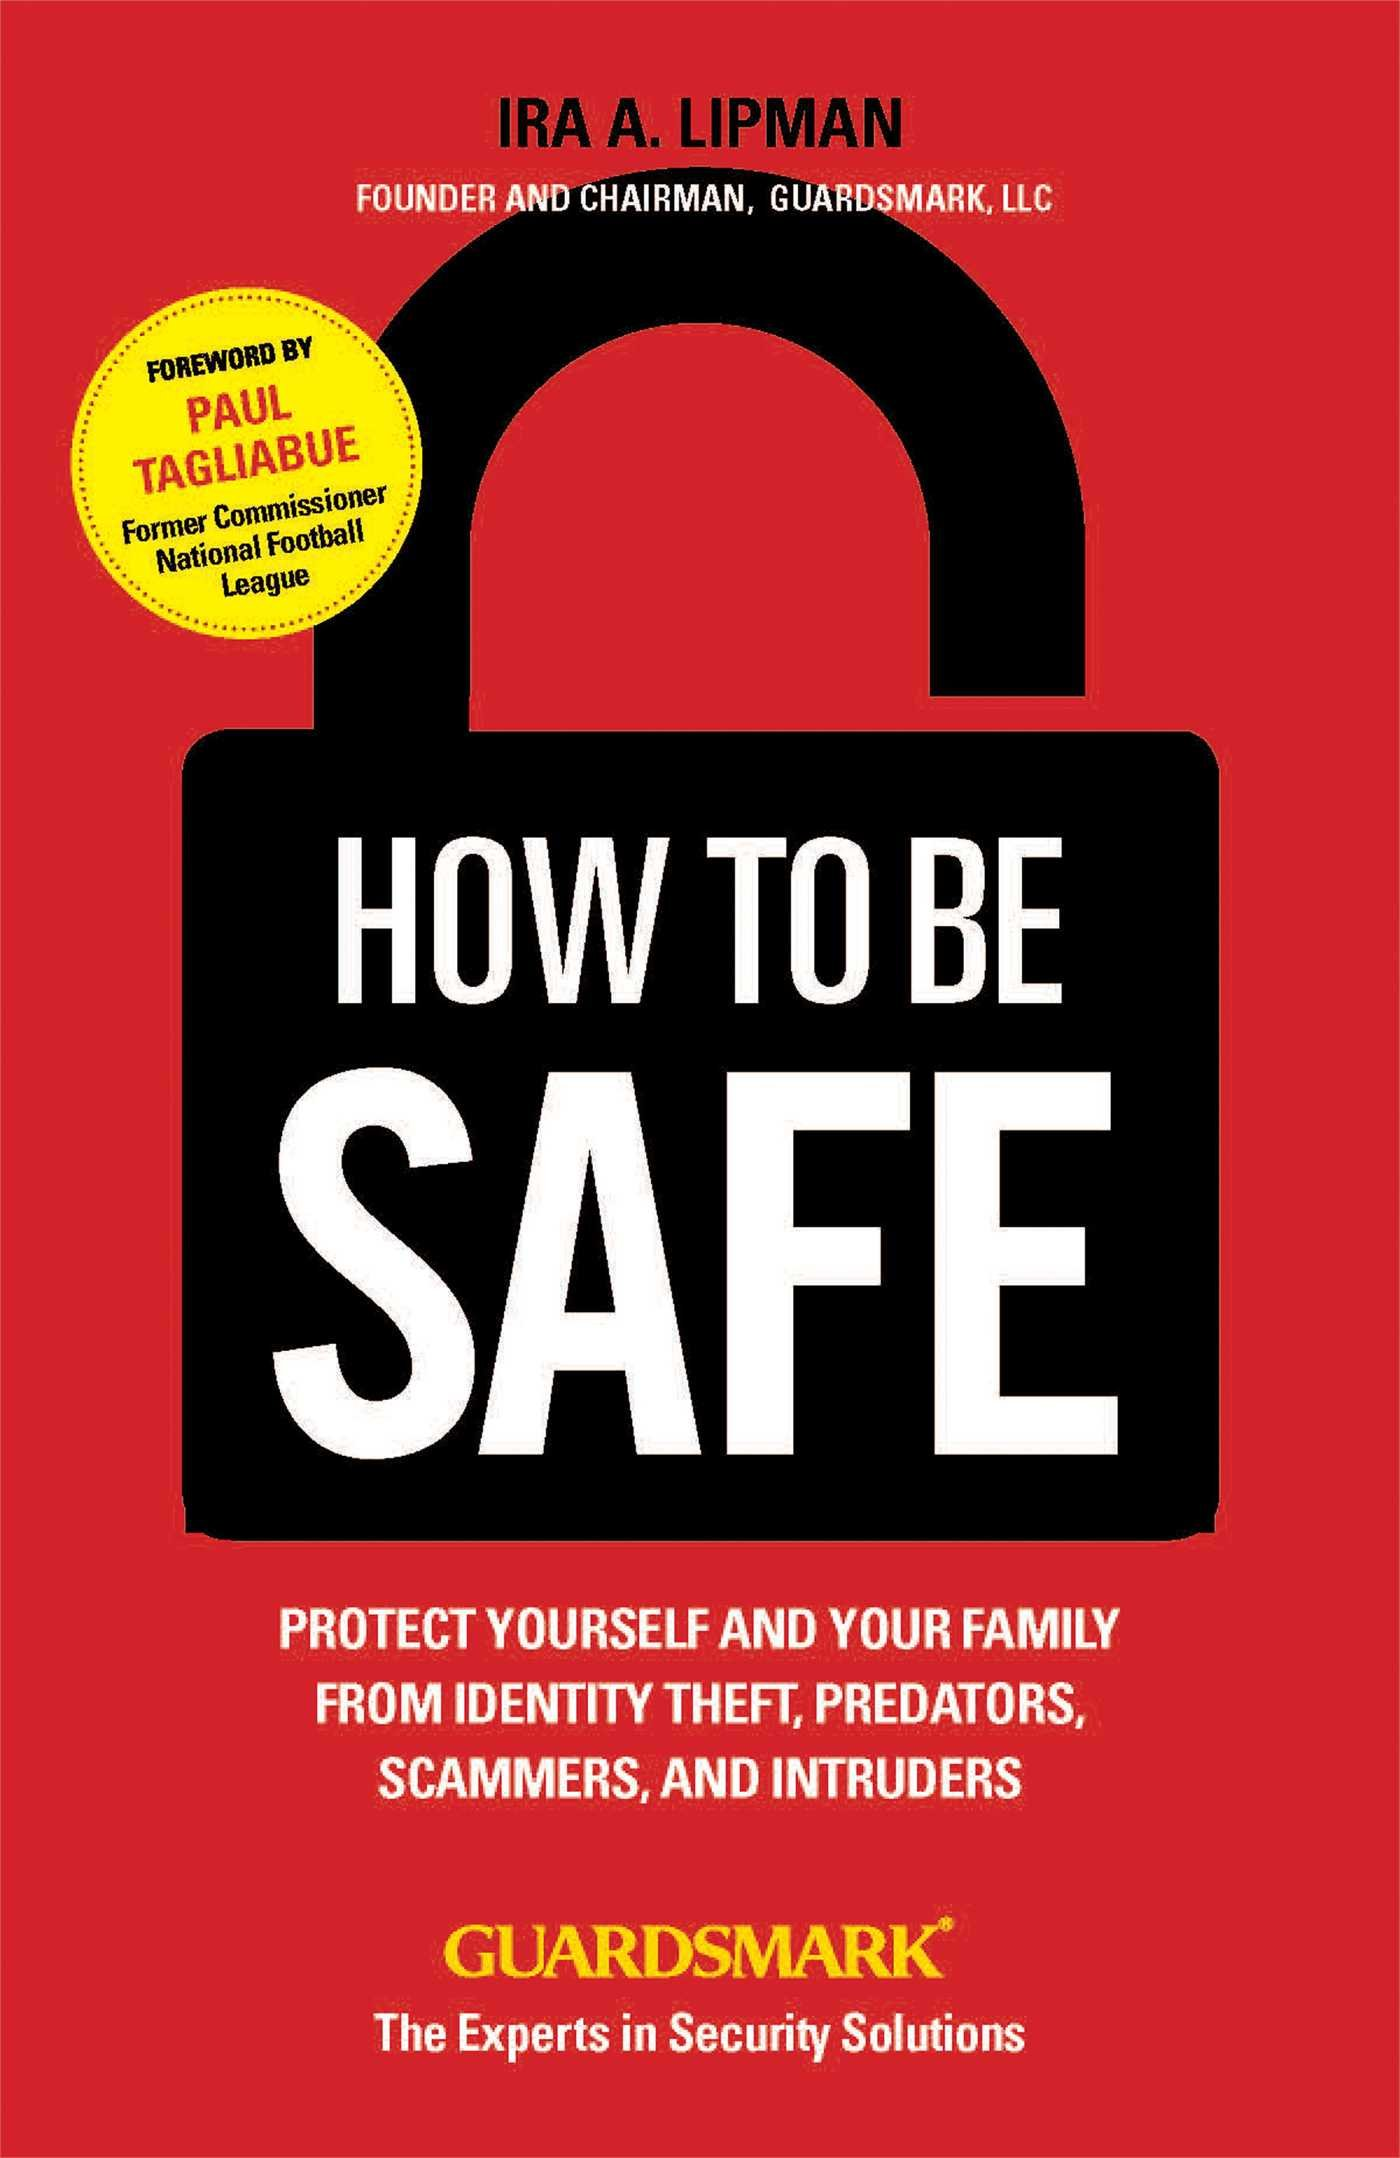 Image OfHow To Be Safe: Protect Yourself And Your Family From Identity Theft, Predators, Scammers And Intruders